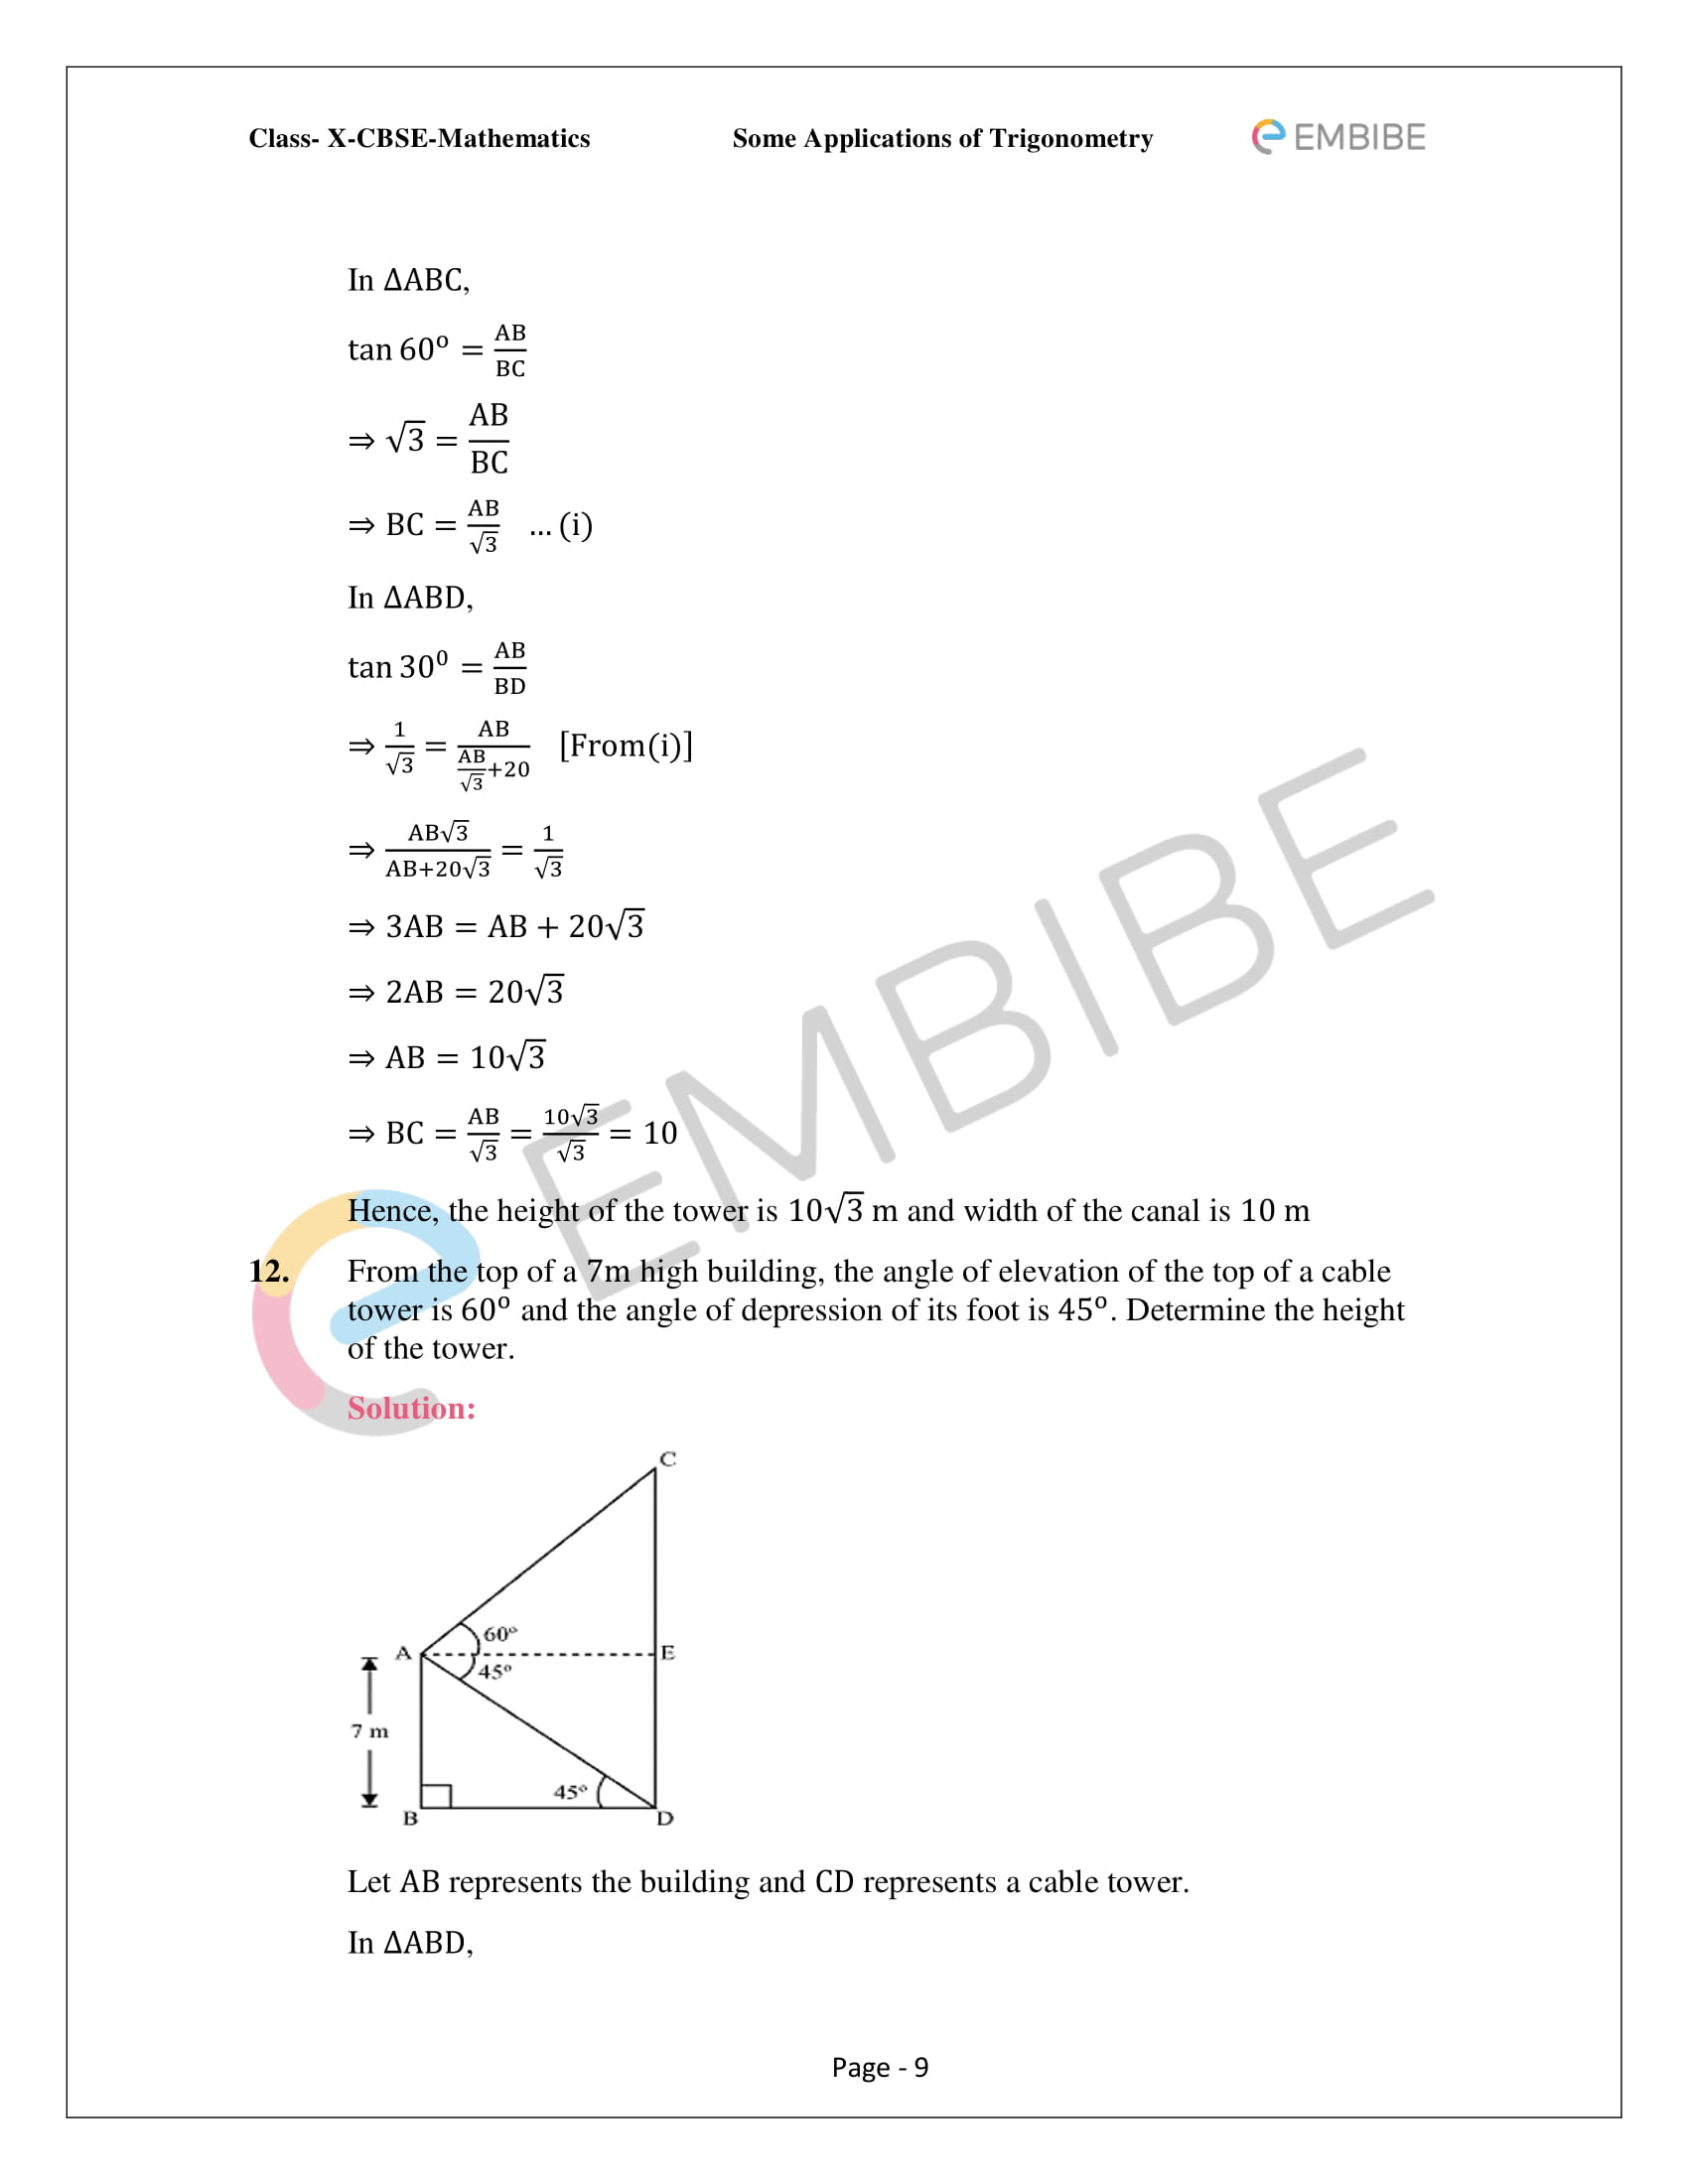 CBSE NCERT Solutions For Class 10 Maths Chapter 9 –Introduction To Trigonometry - 9